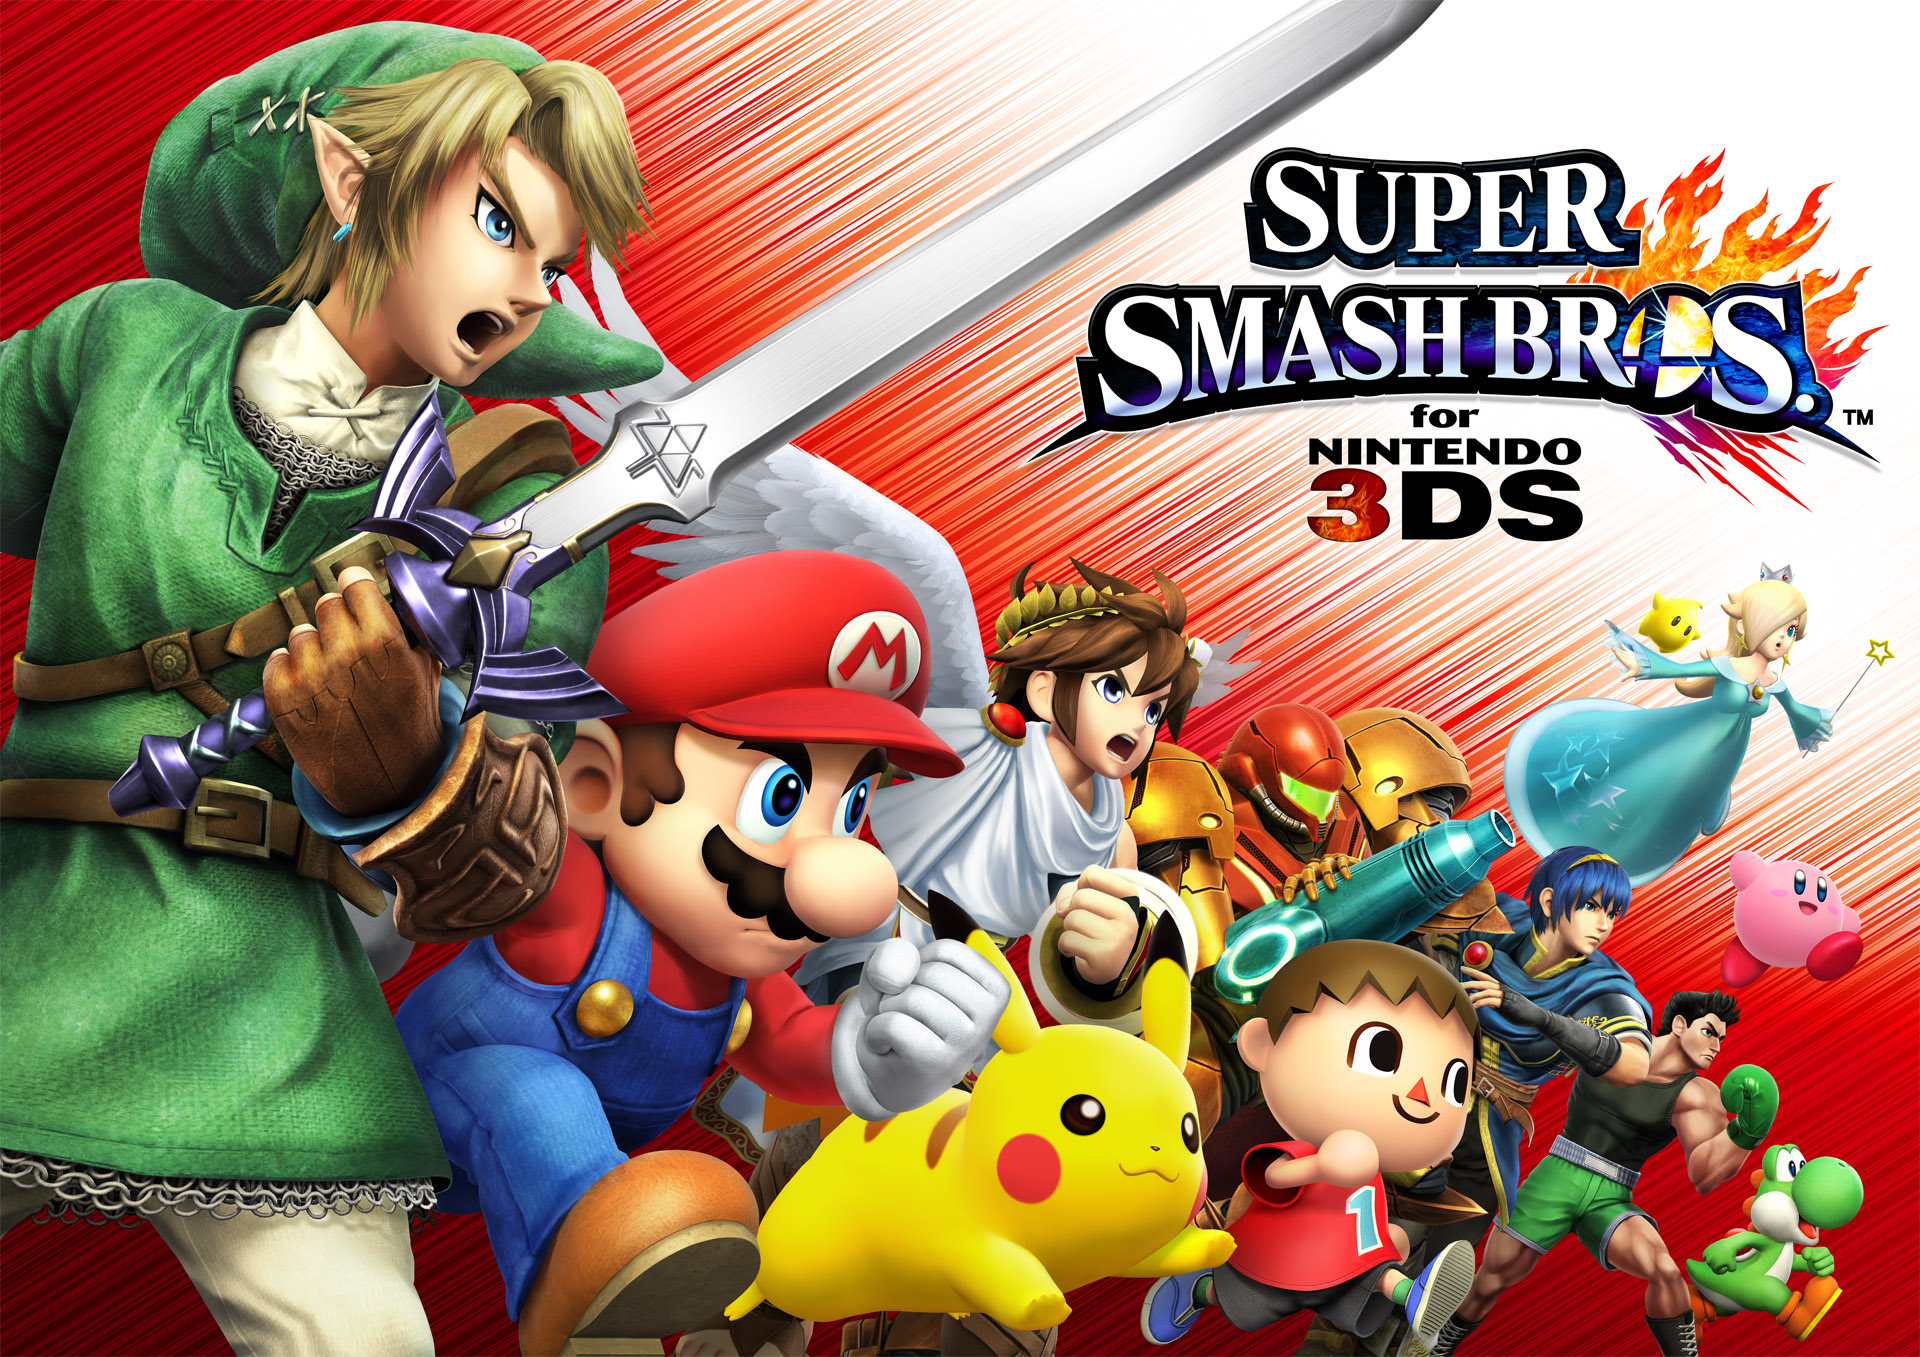 N3DS_SuperSmashBros_illustration